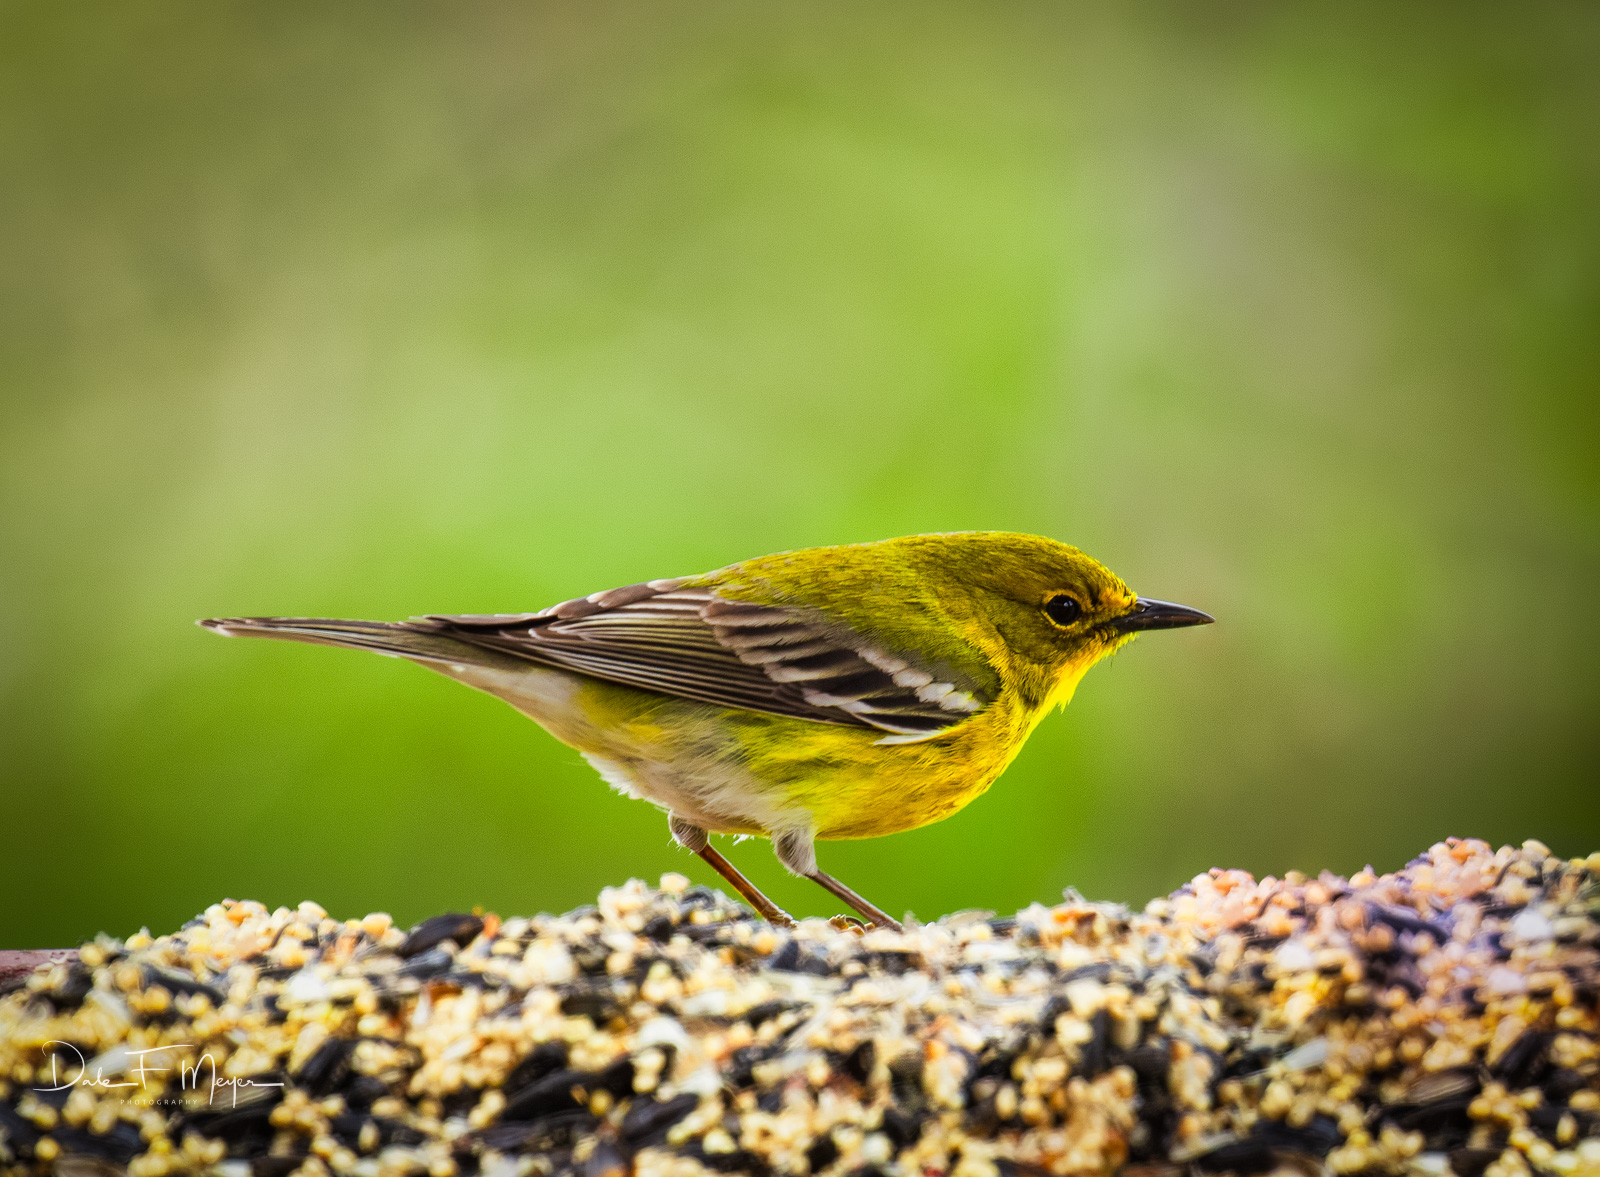 Little Yellow Finch on a perch of golden seed. These little birds become brighter yellow as spring unfolds and are quite the...